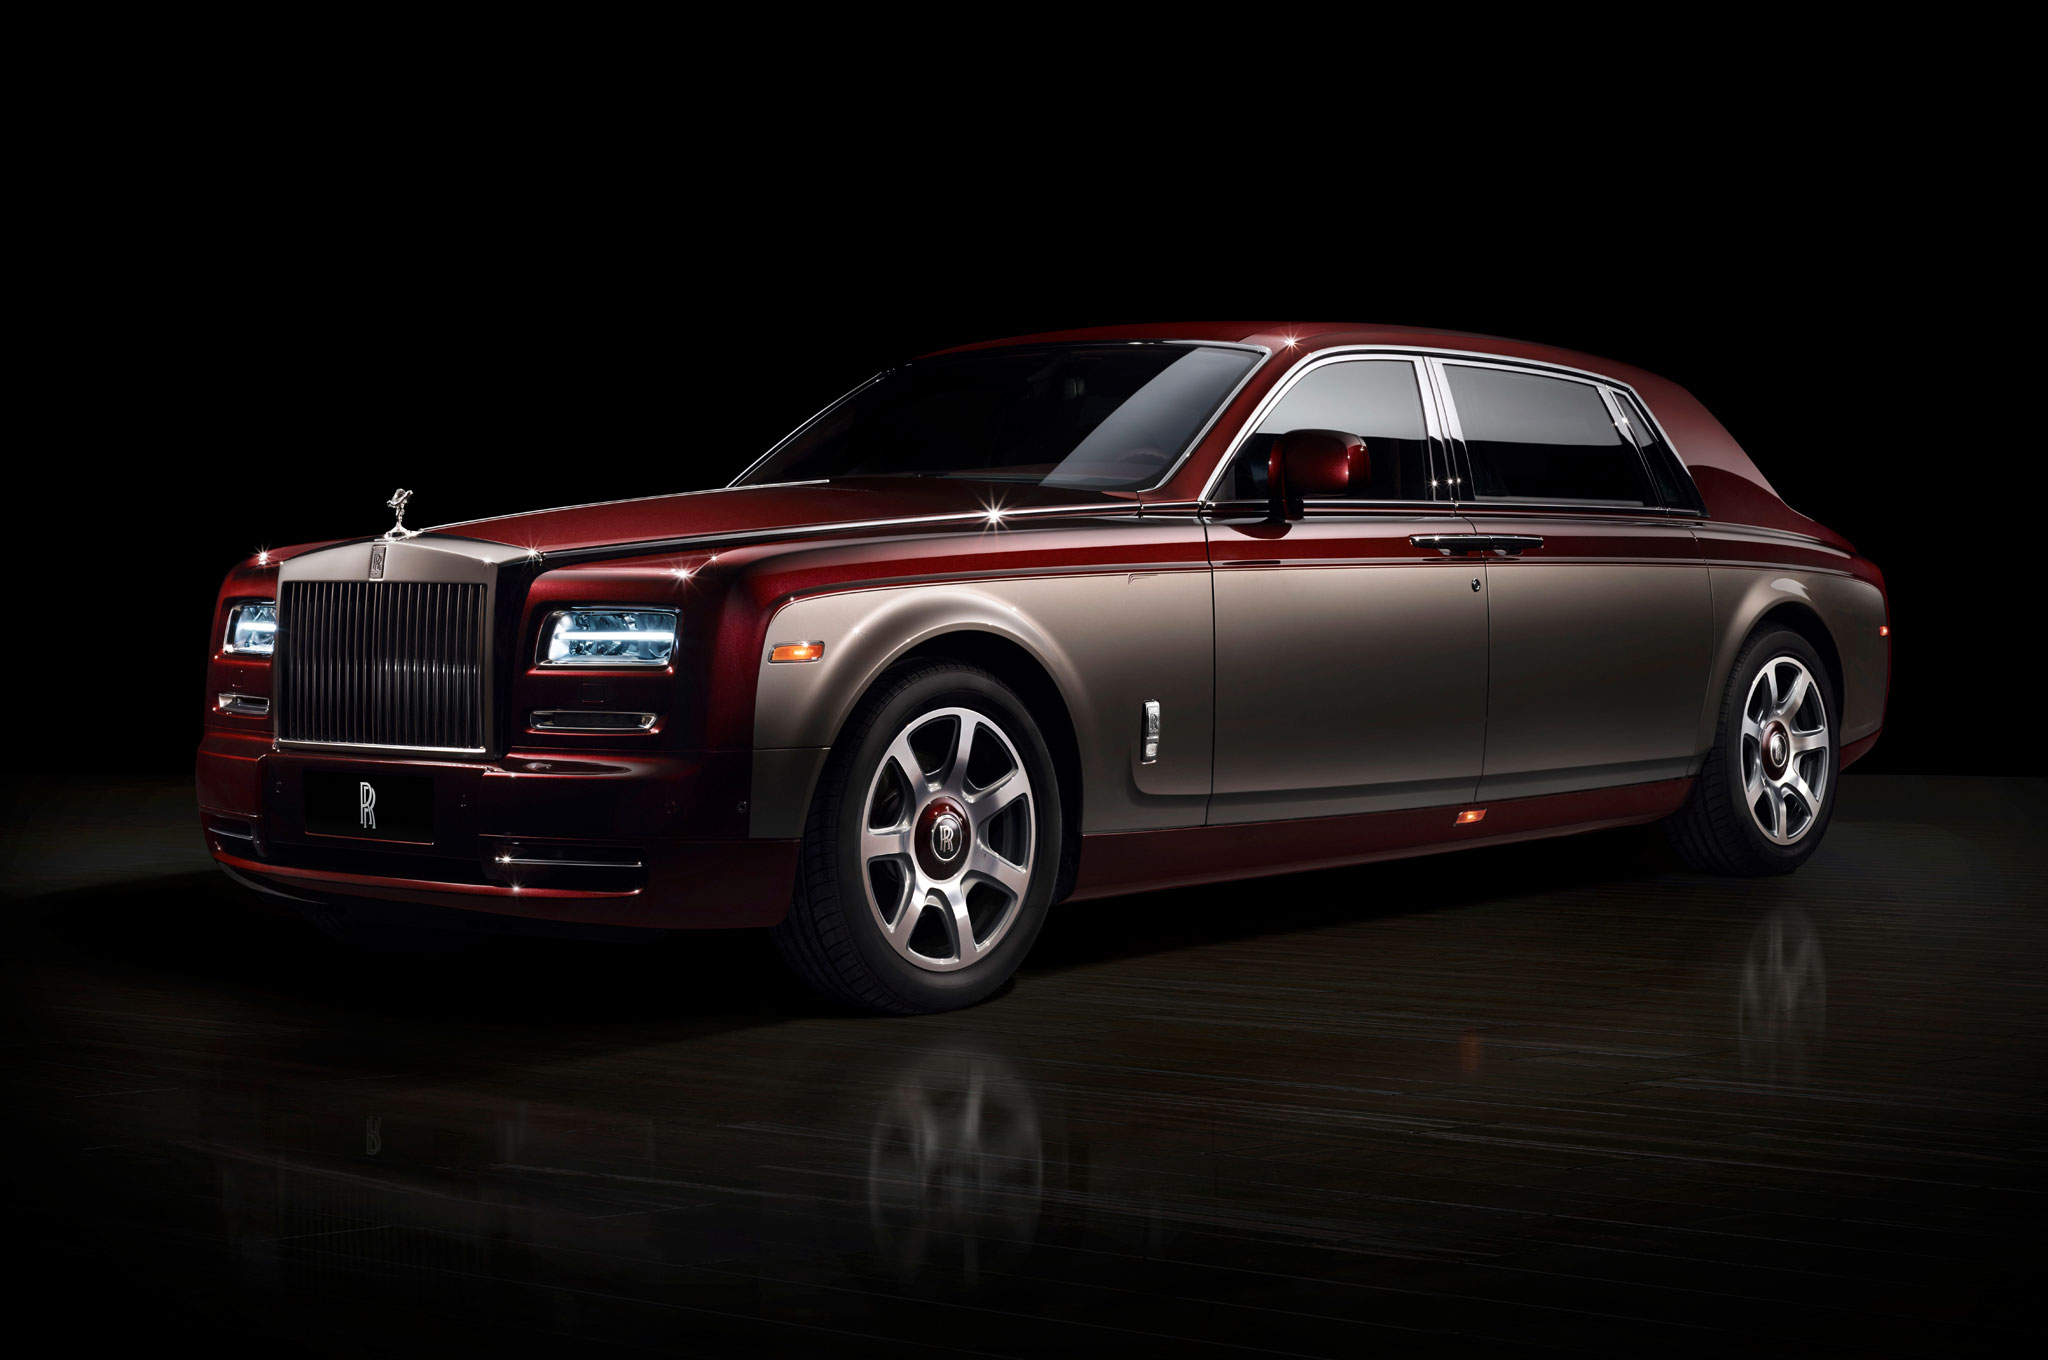 2015 Rolls Royce Phantom #10